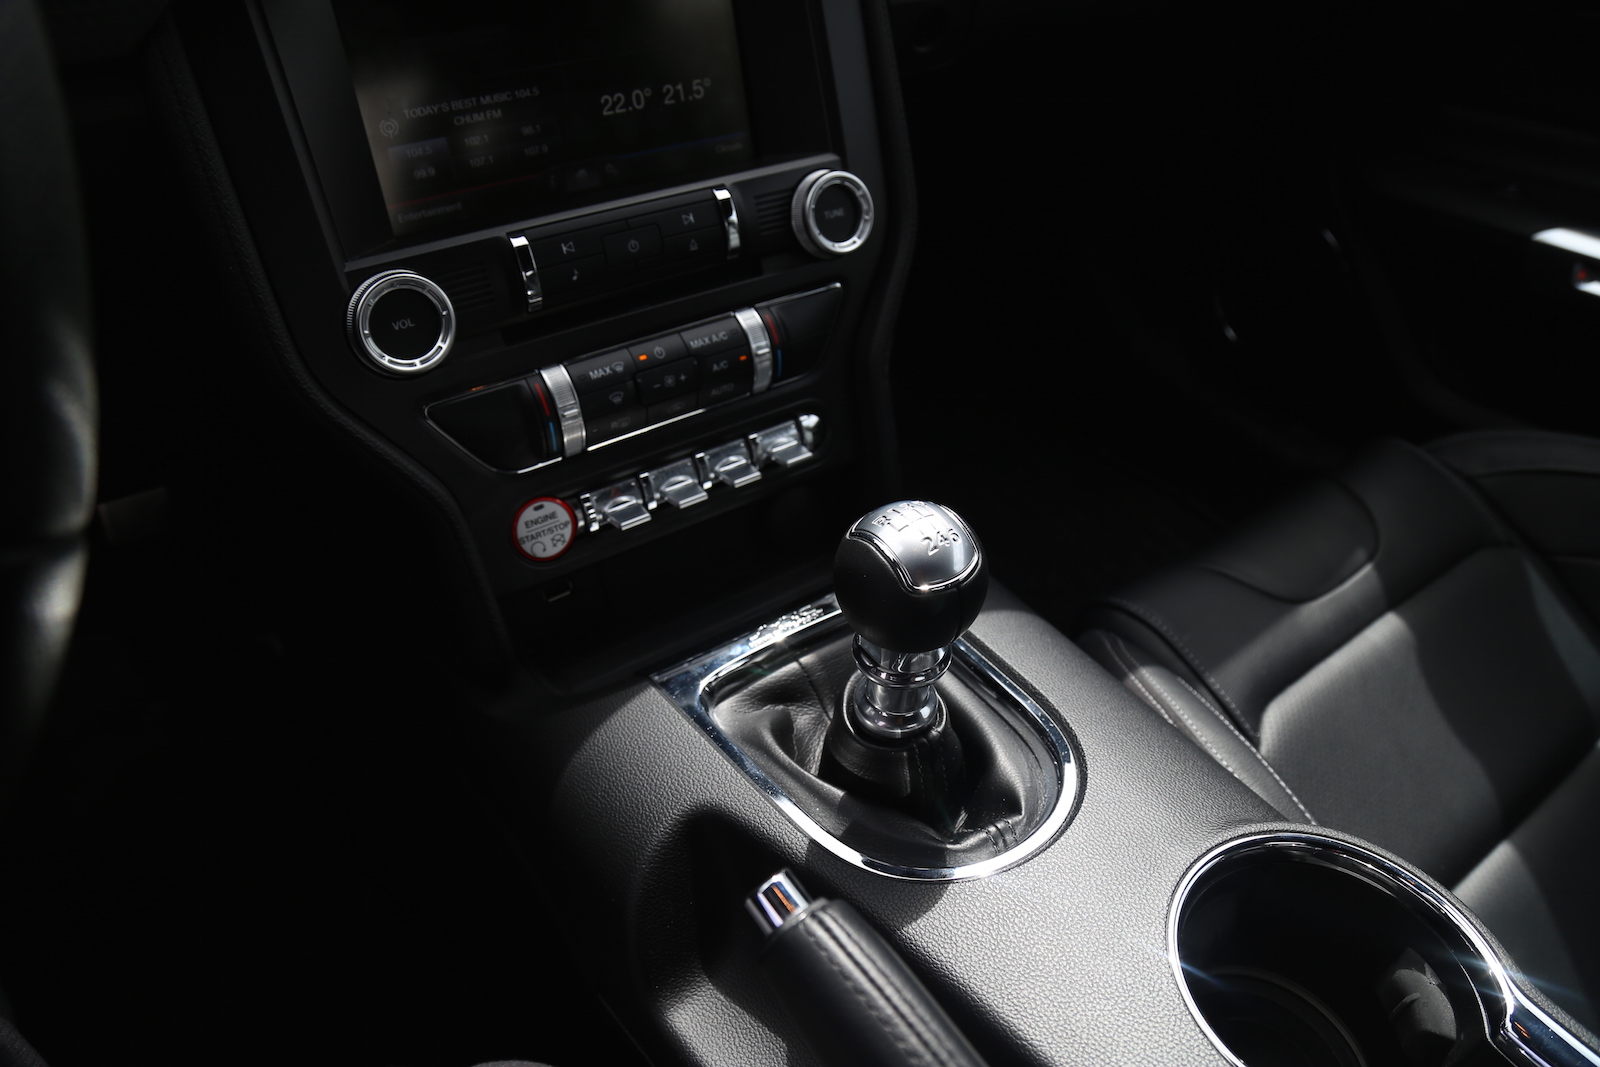 2015 ford mustang gt manual gearbox